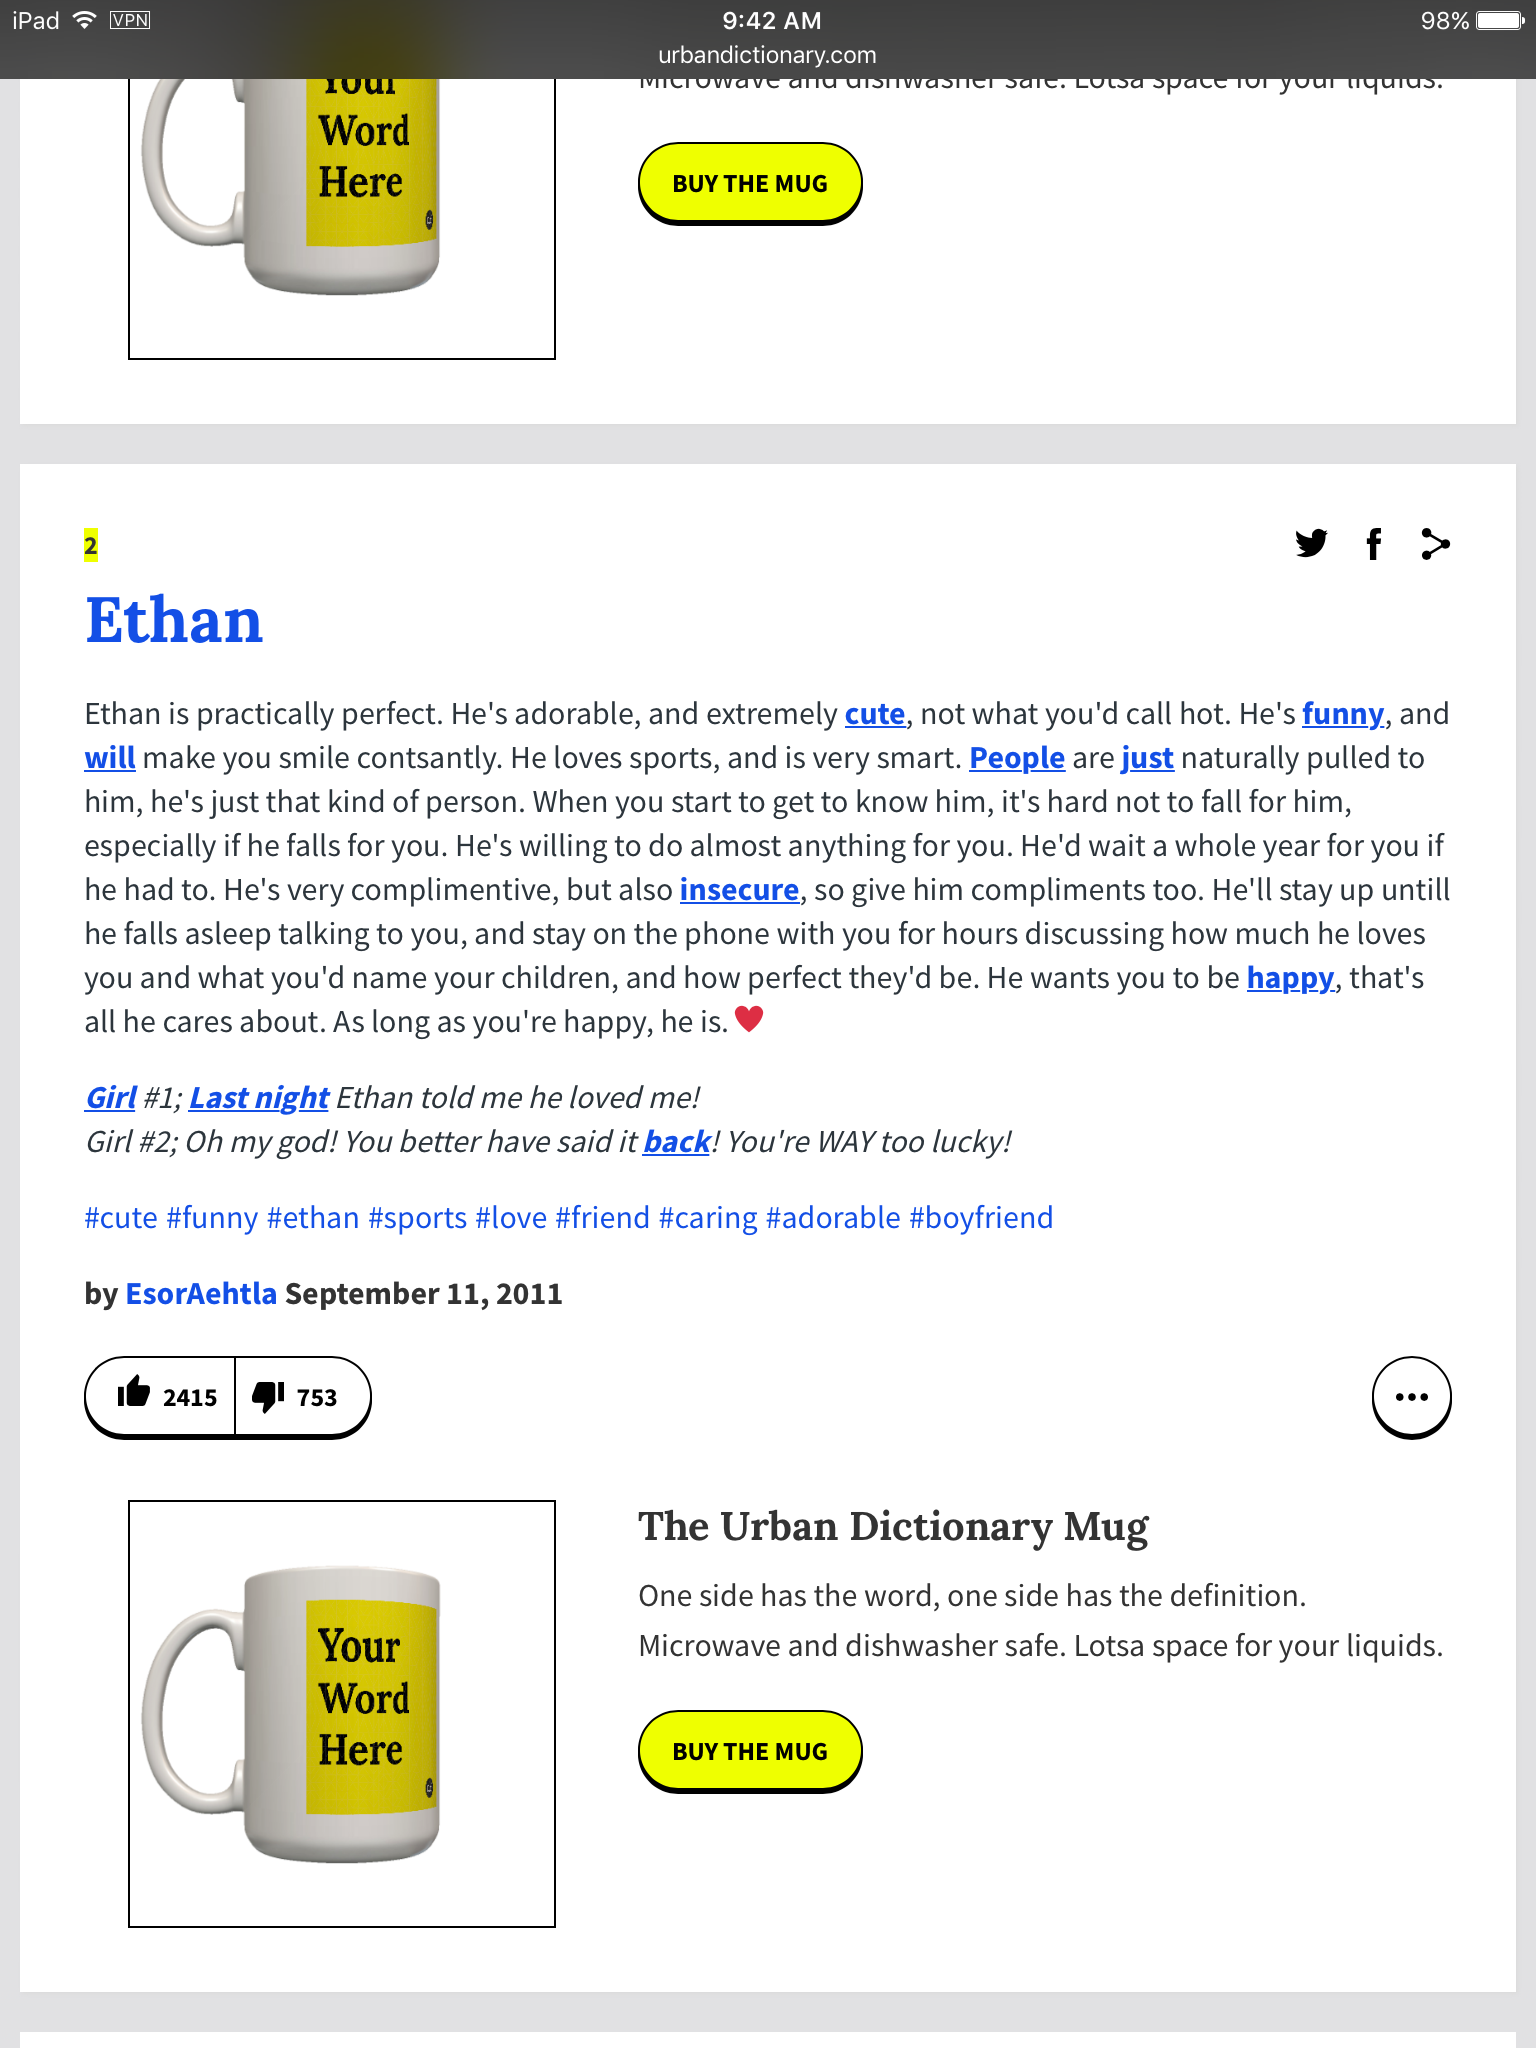 safe urban dictionary